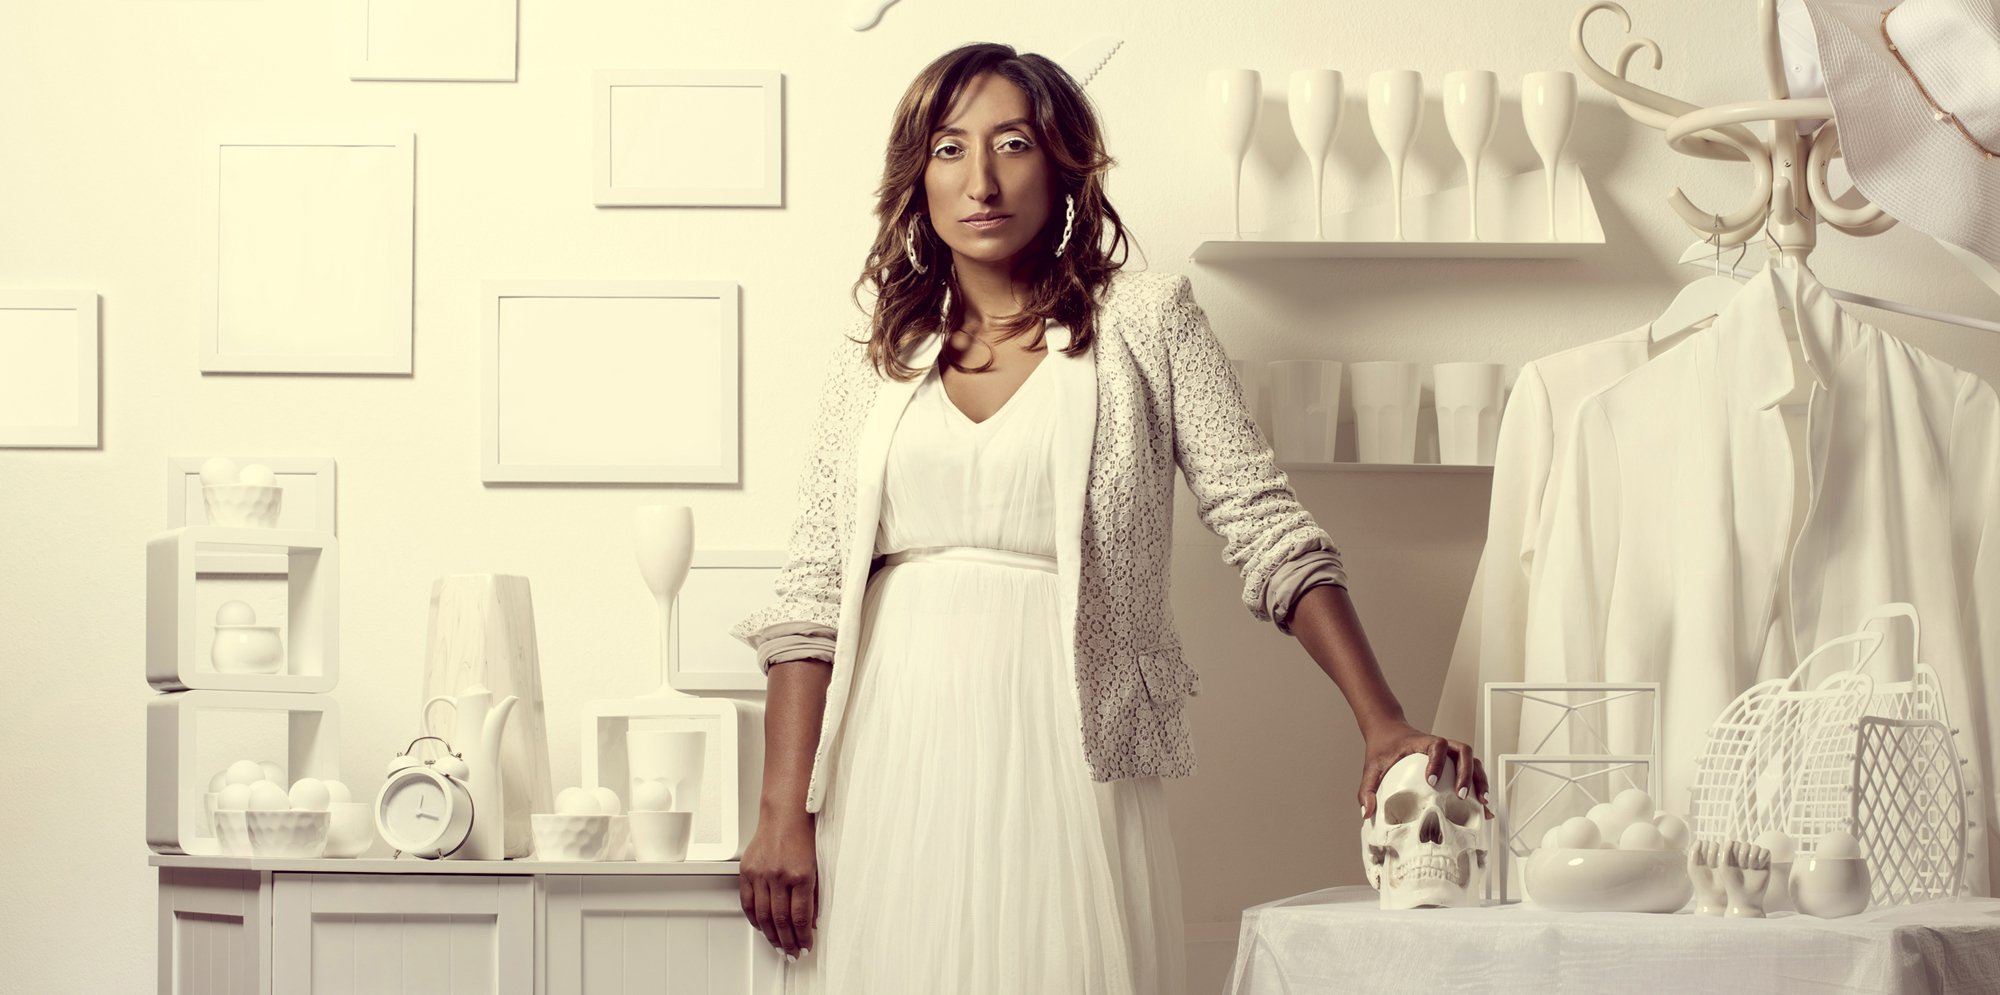 Shazia Mirza, dressed in a white dress and white jacked stands in front of a background made up of white objects. Her hand is resting on a skull.